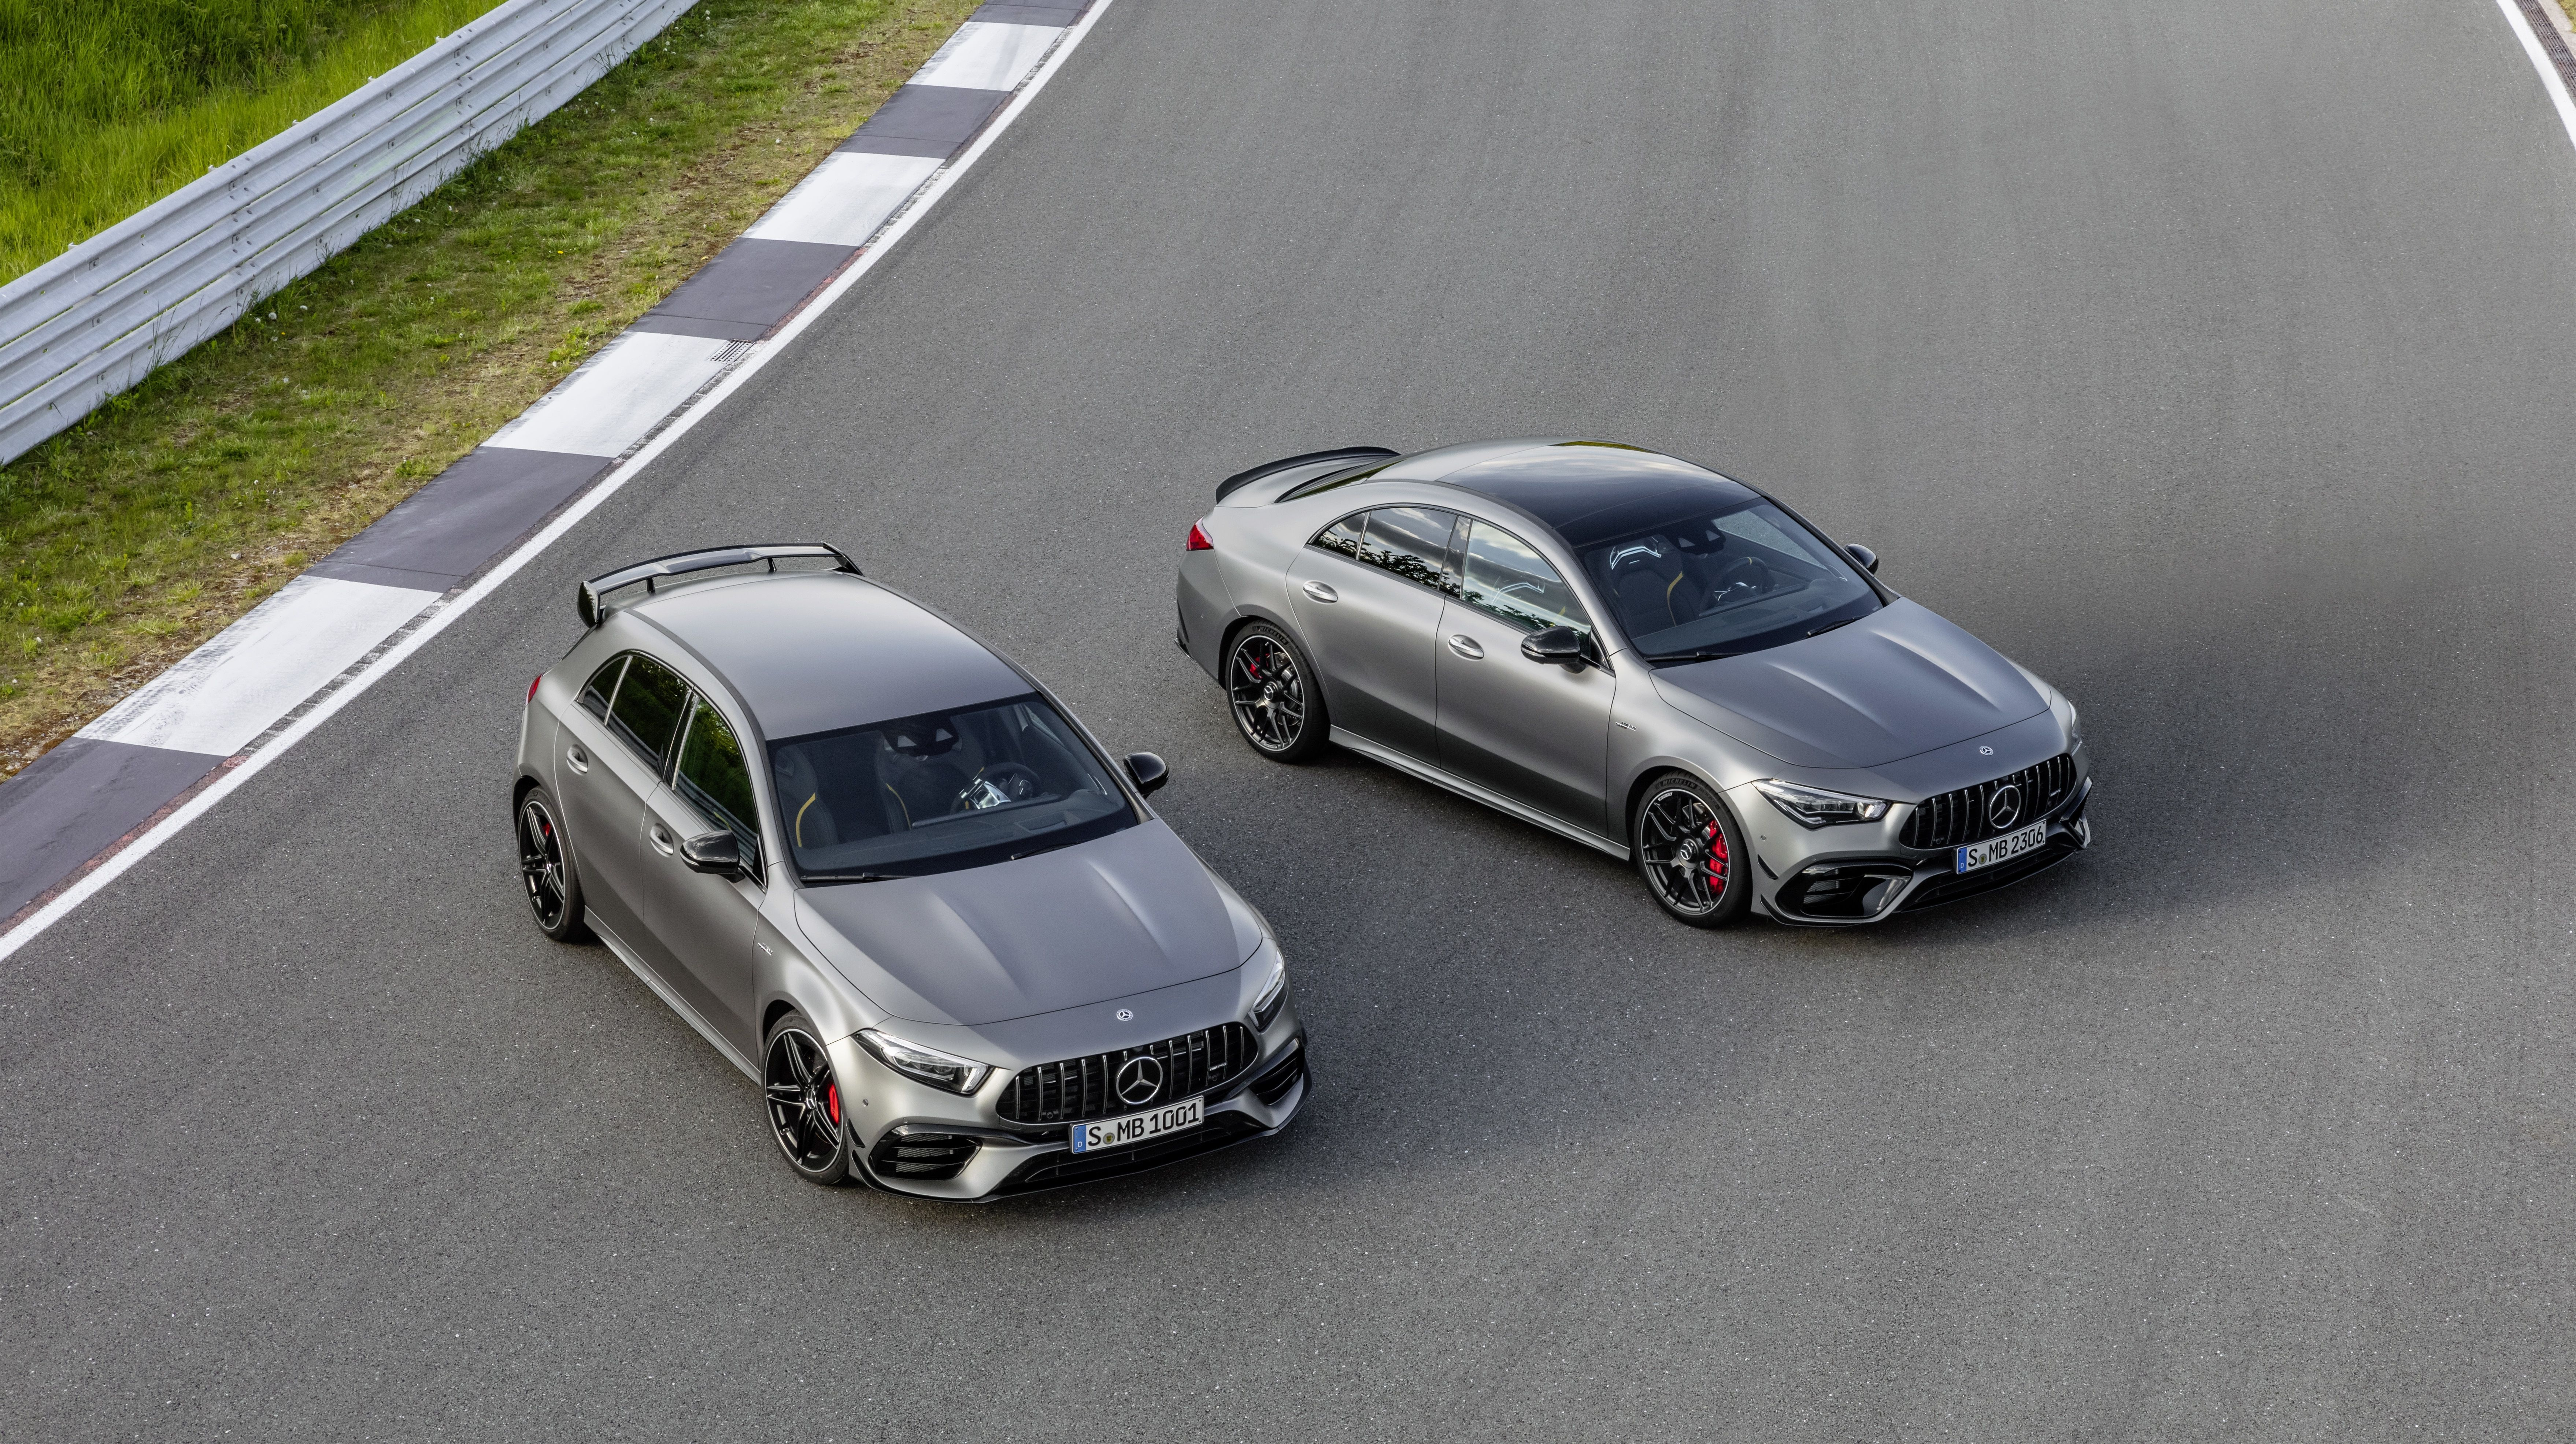 Amg Is Rewriting Rules Of Compact Cars With The Unbelievably Powerful 2020 Amg Cla 45 A45 Latest Mercedes Benz Mercedes Compact Cars